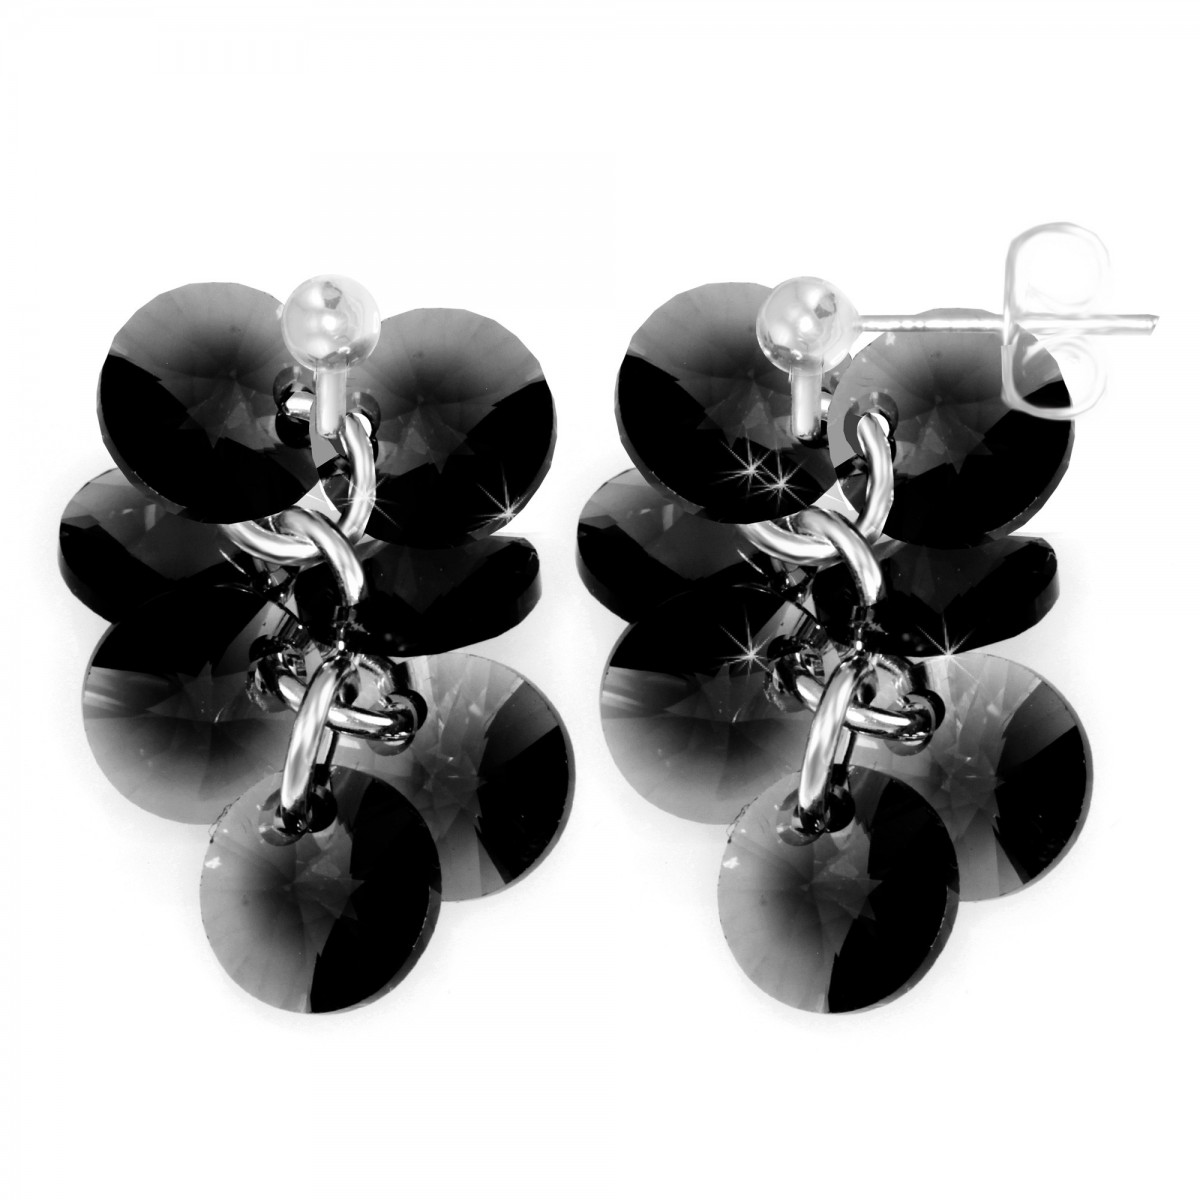 Boucles d'oreilles mode So Charm made with crystal from Swarovski noir